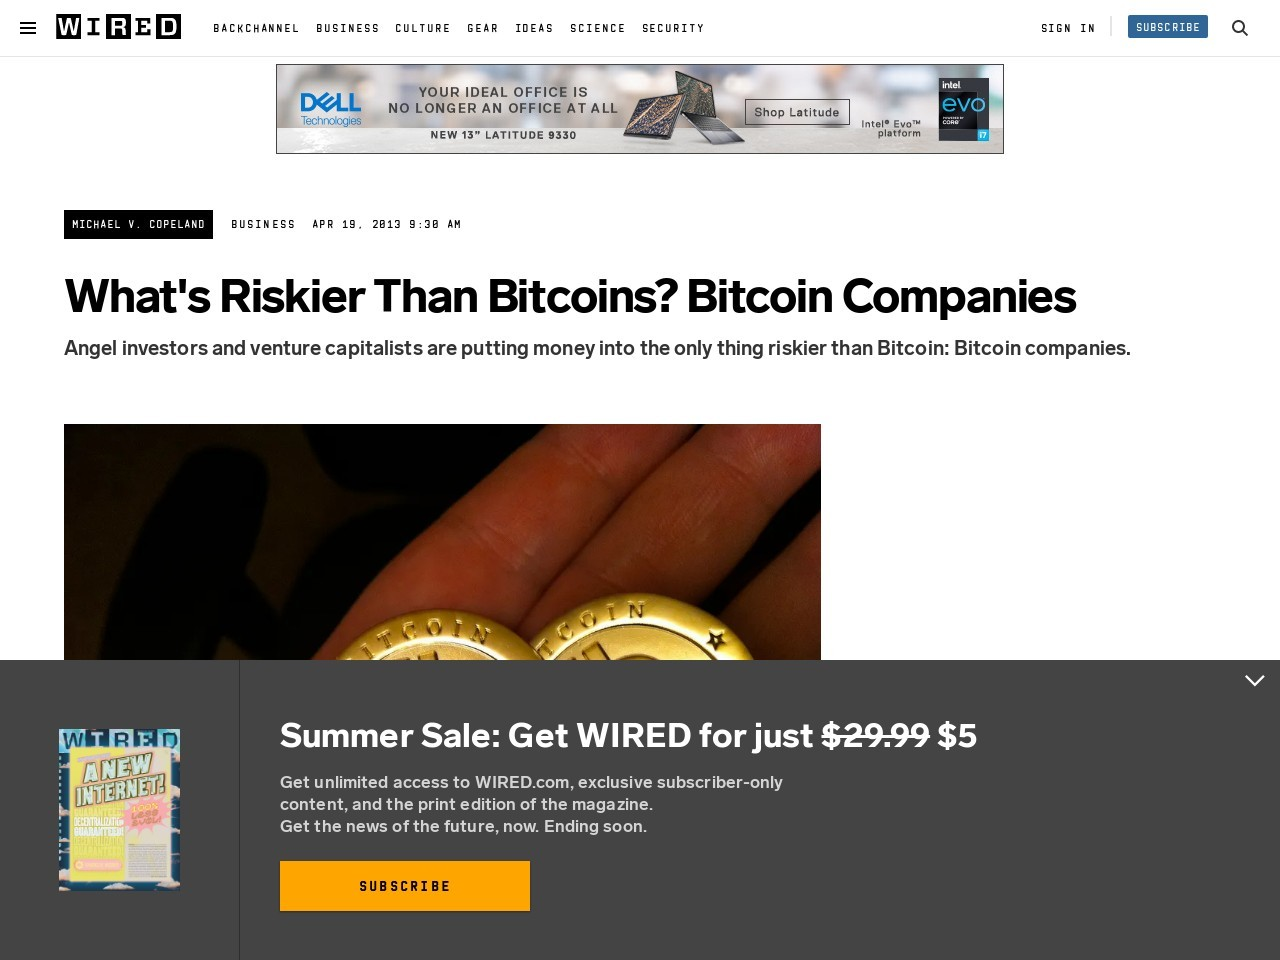 What's Riskier Than Bitcoins? Bitcoin Companies